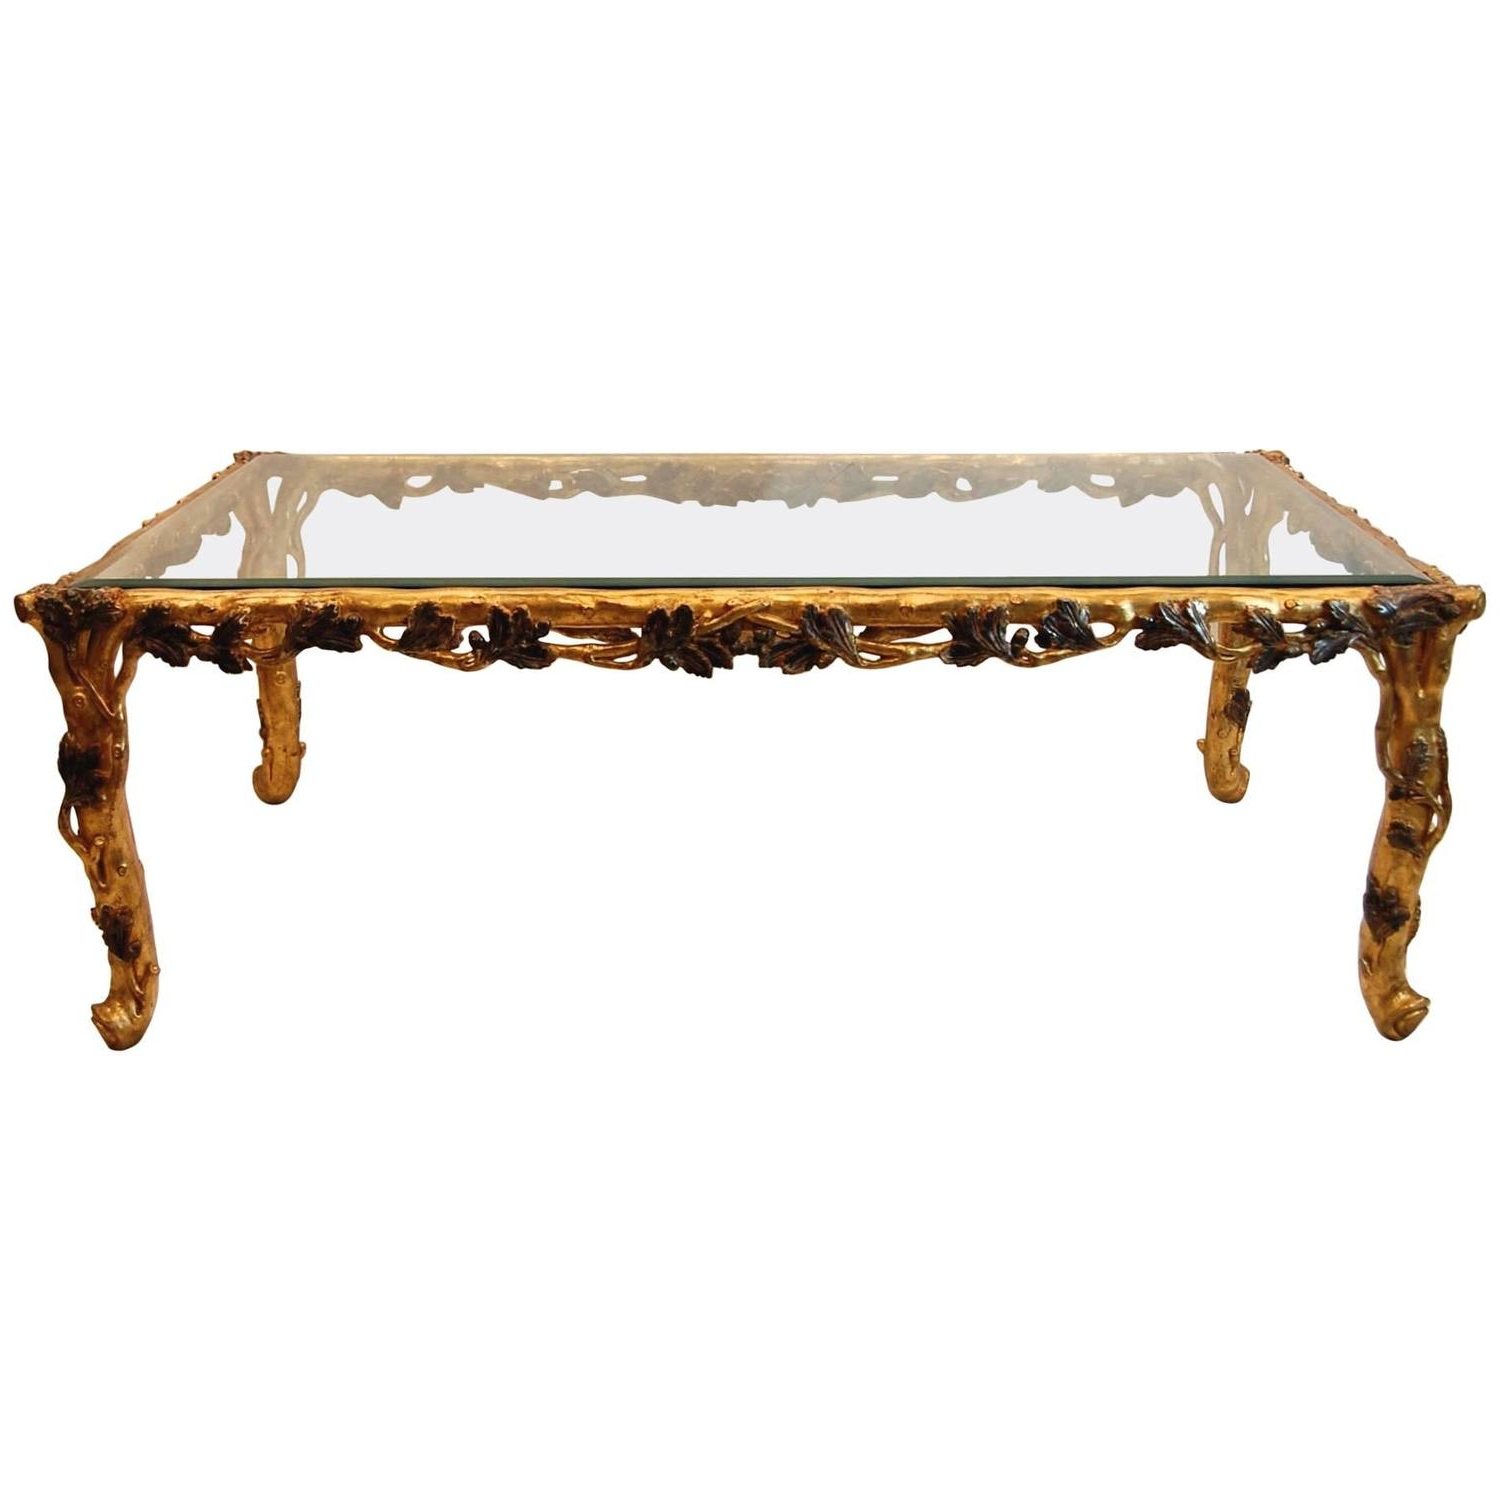 Gold Leaf Coffee And Cocktail Tables – 95 For Sale At 1stdibs For Trendy Gold Leaf Collection Coffee Tables (View 4 of 20)